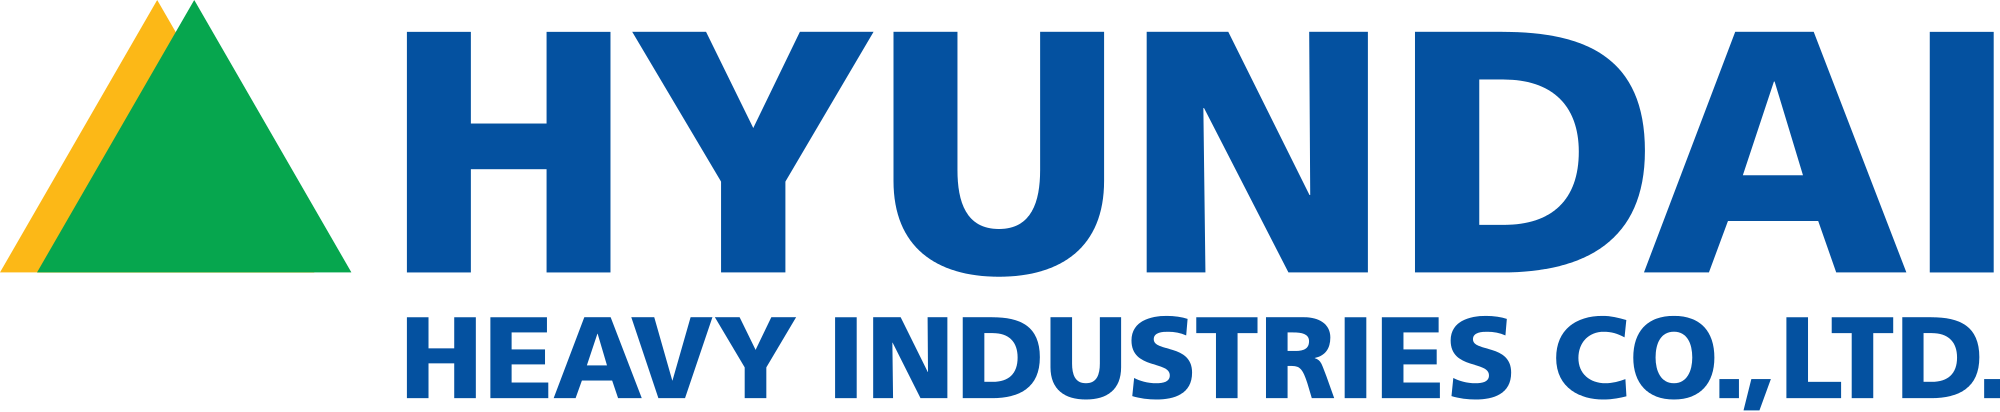 Huyndai Heavy Industries